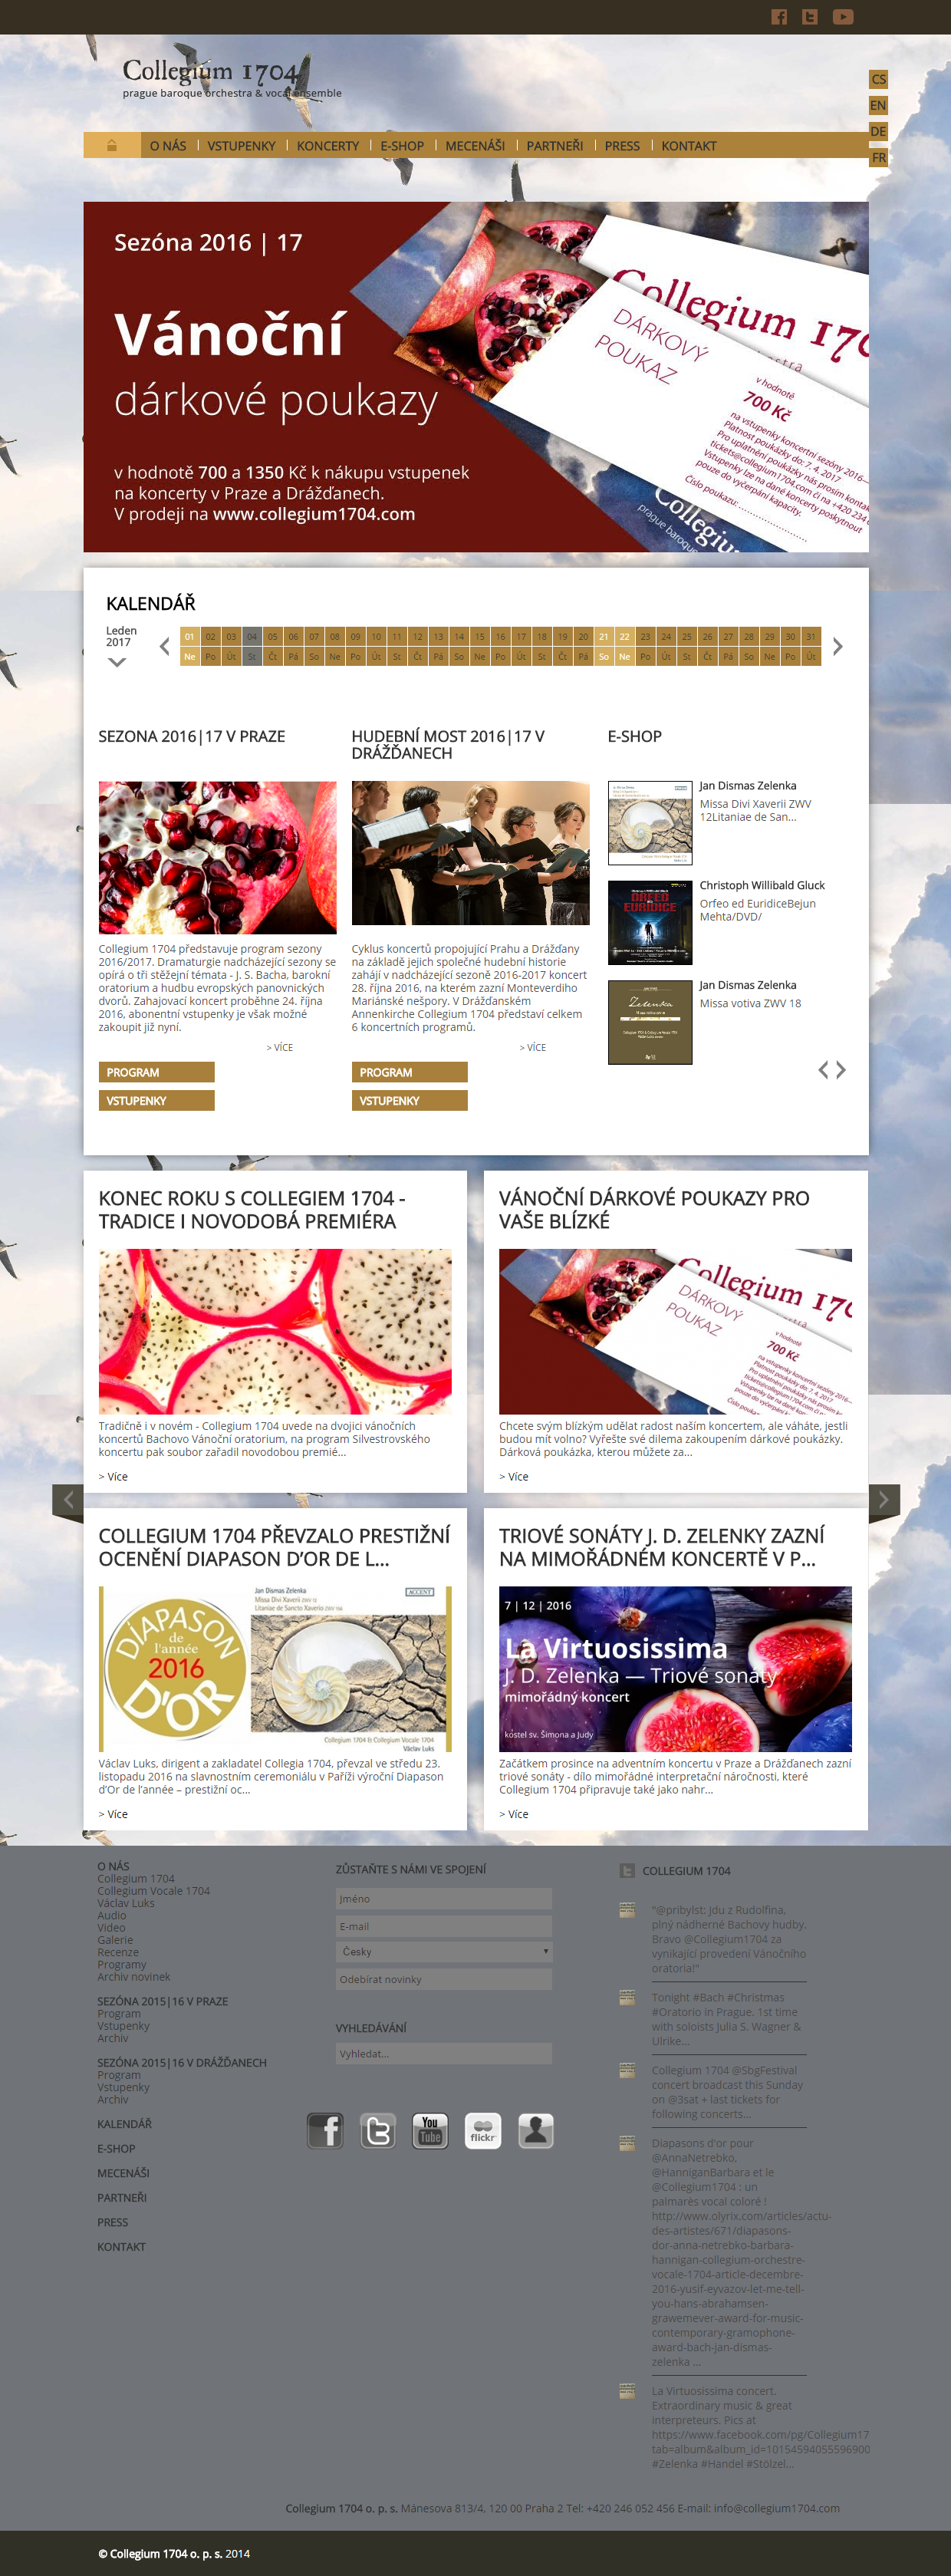 collegium1704 homepage